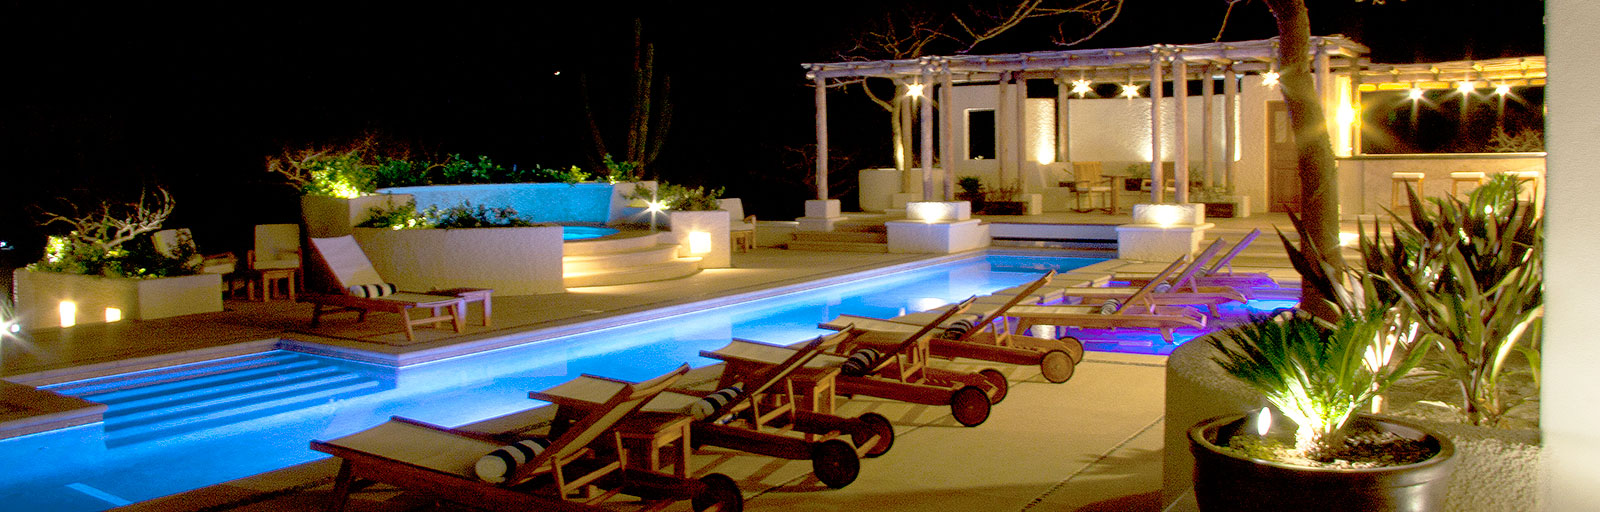 Mexico Yoga Retreats & Wellness Center: Swimming Pool and Hot Tub at Night